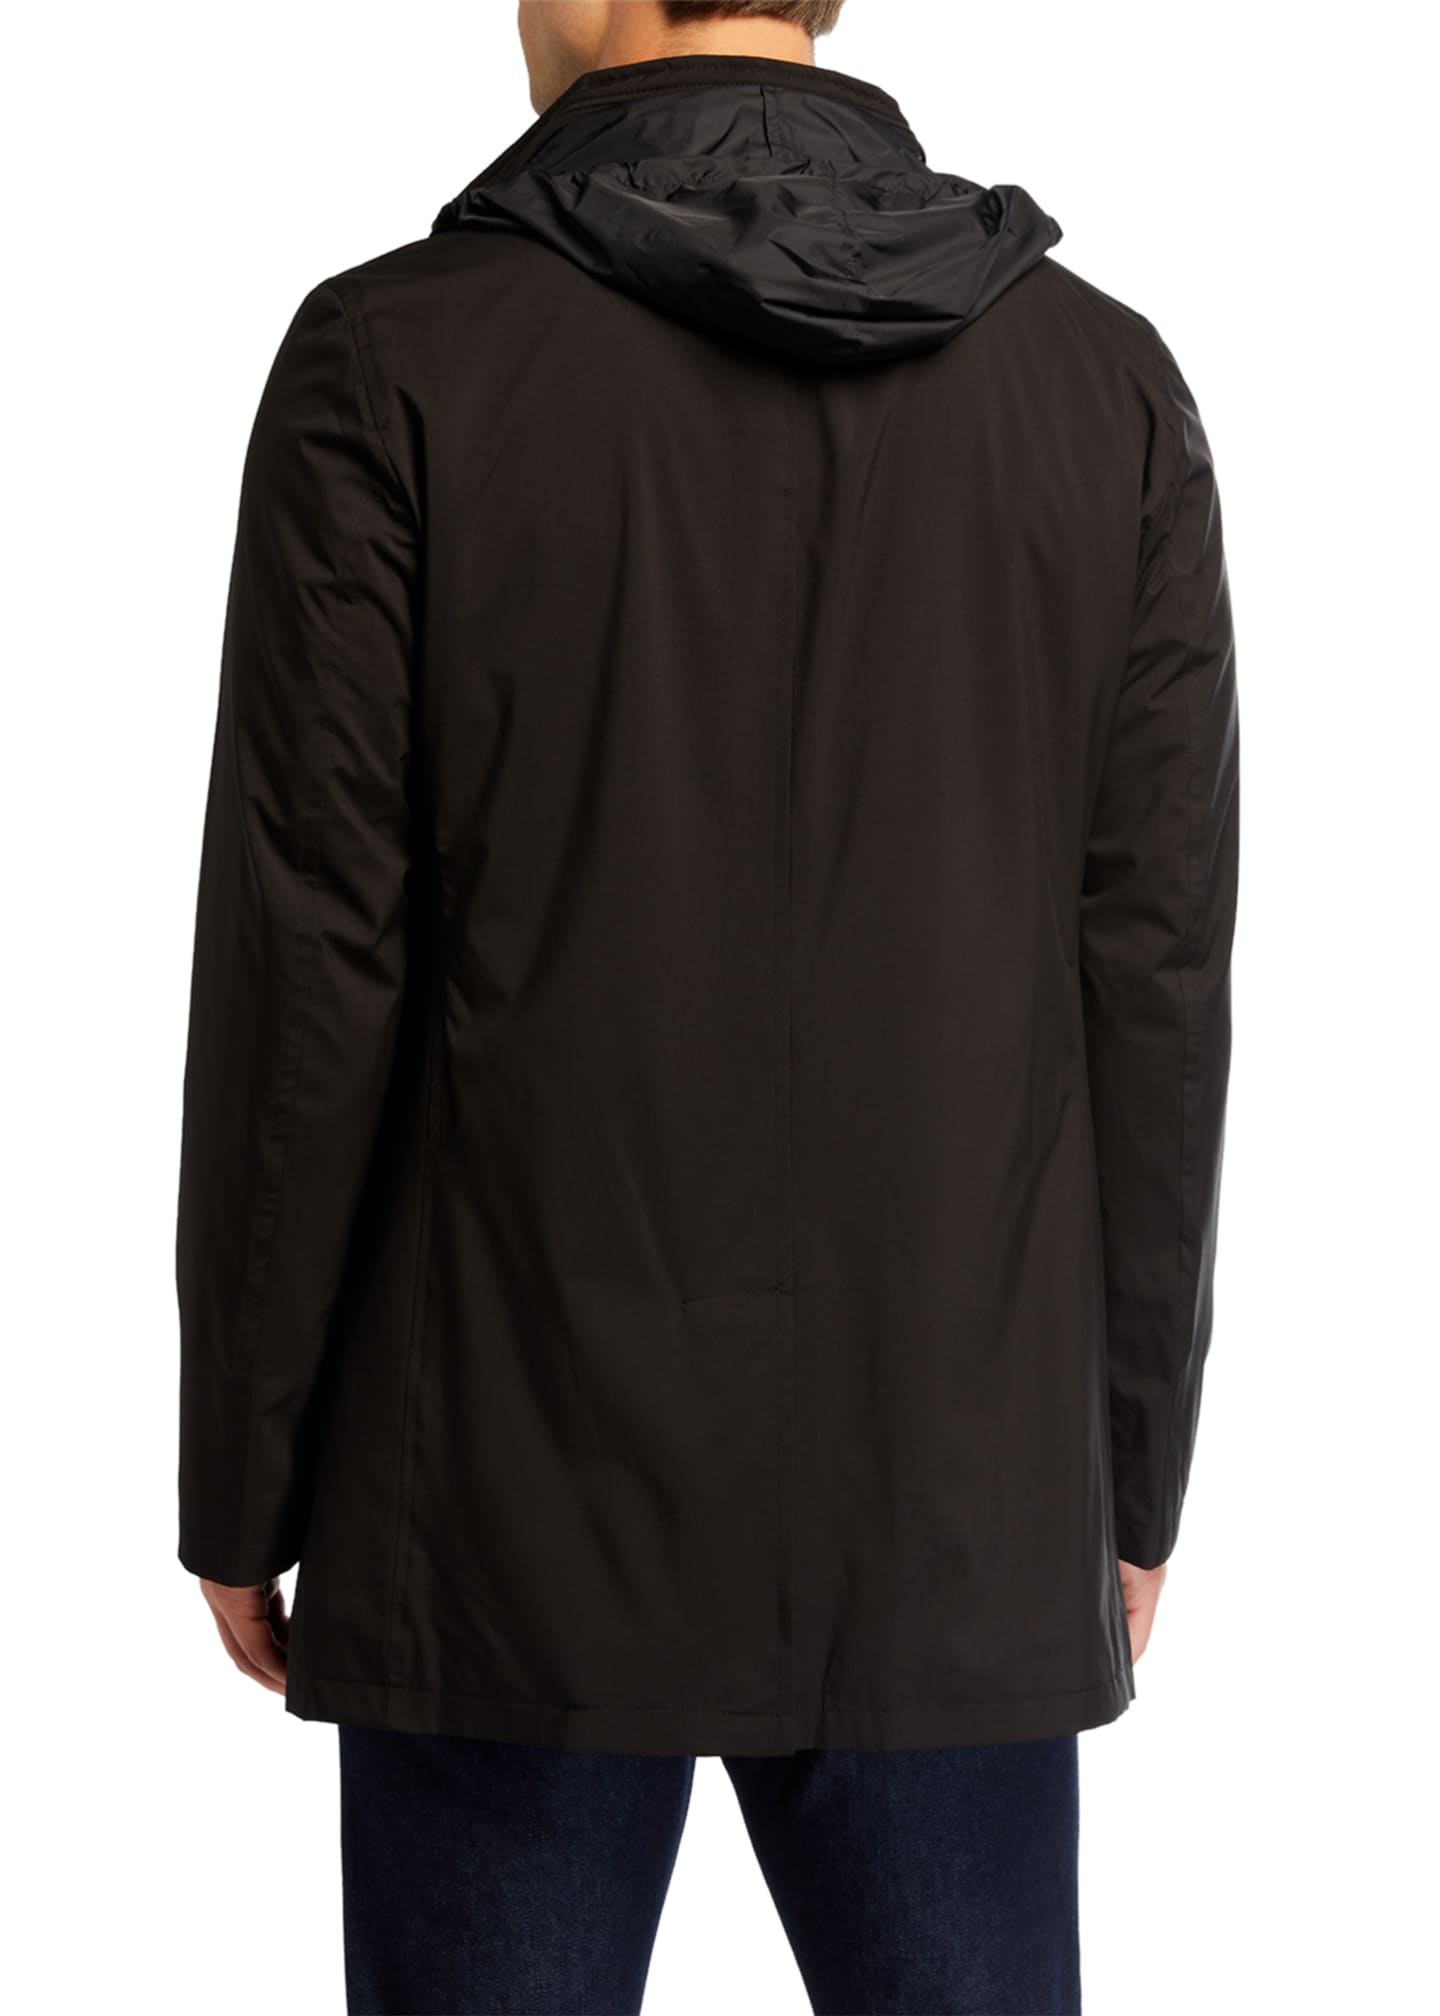 Image 3 of 3: Men's Technical Stretch Raincoat, Black